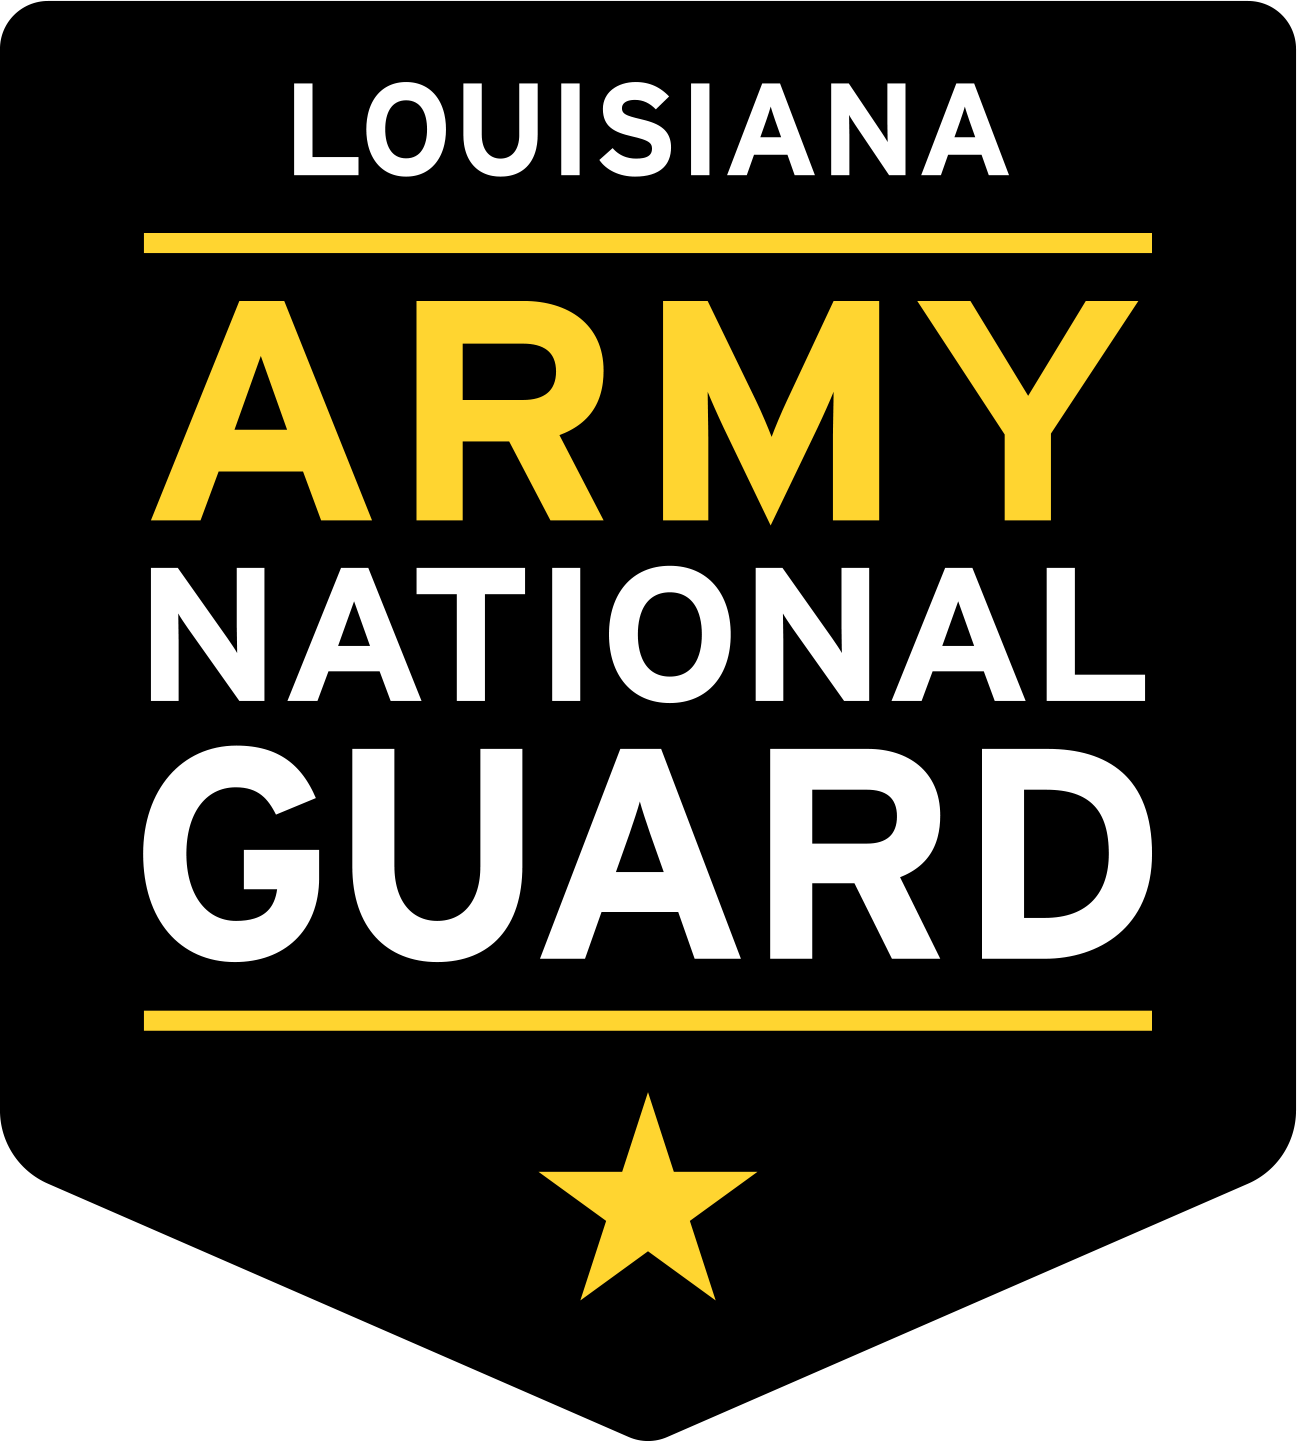 Louisiana Army National Guard Recruiting